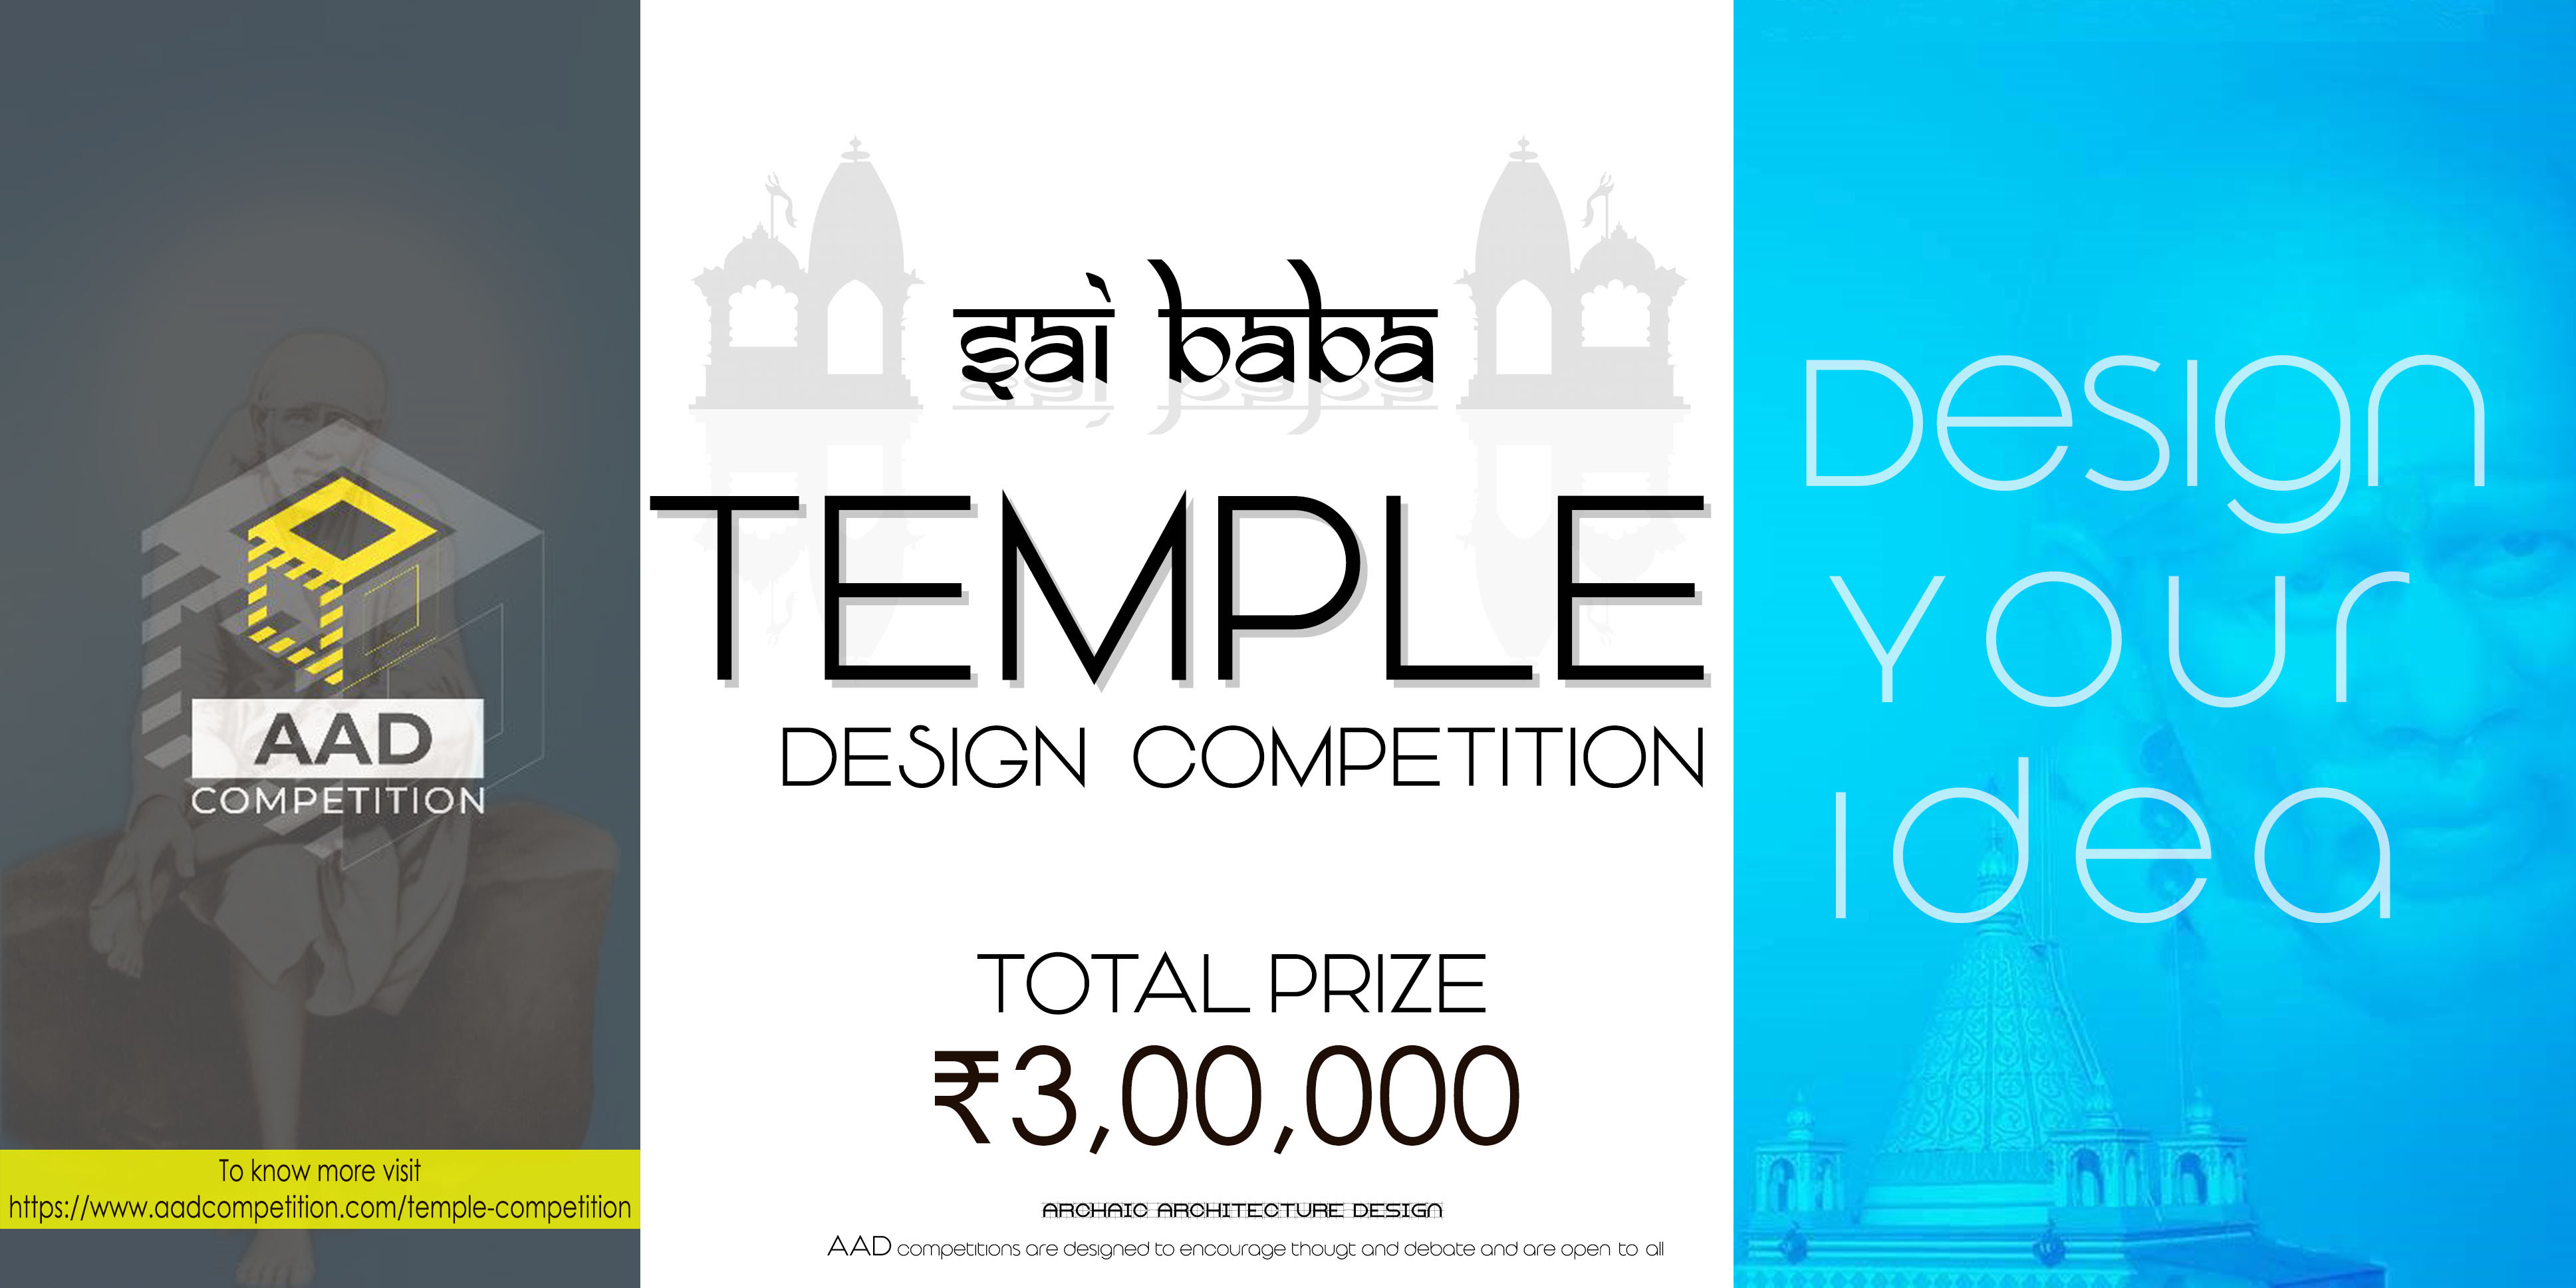 TEMPLE COMPETITION INVITATION